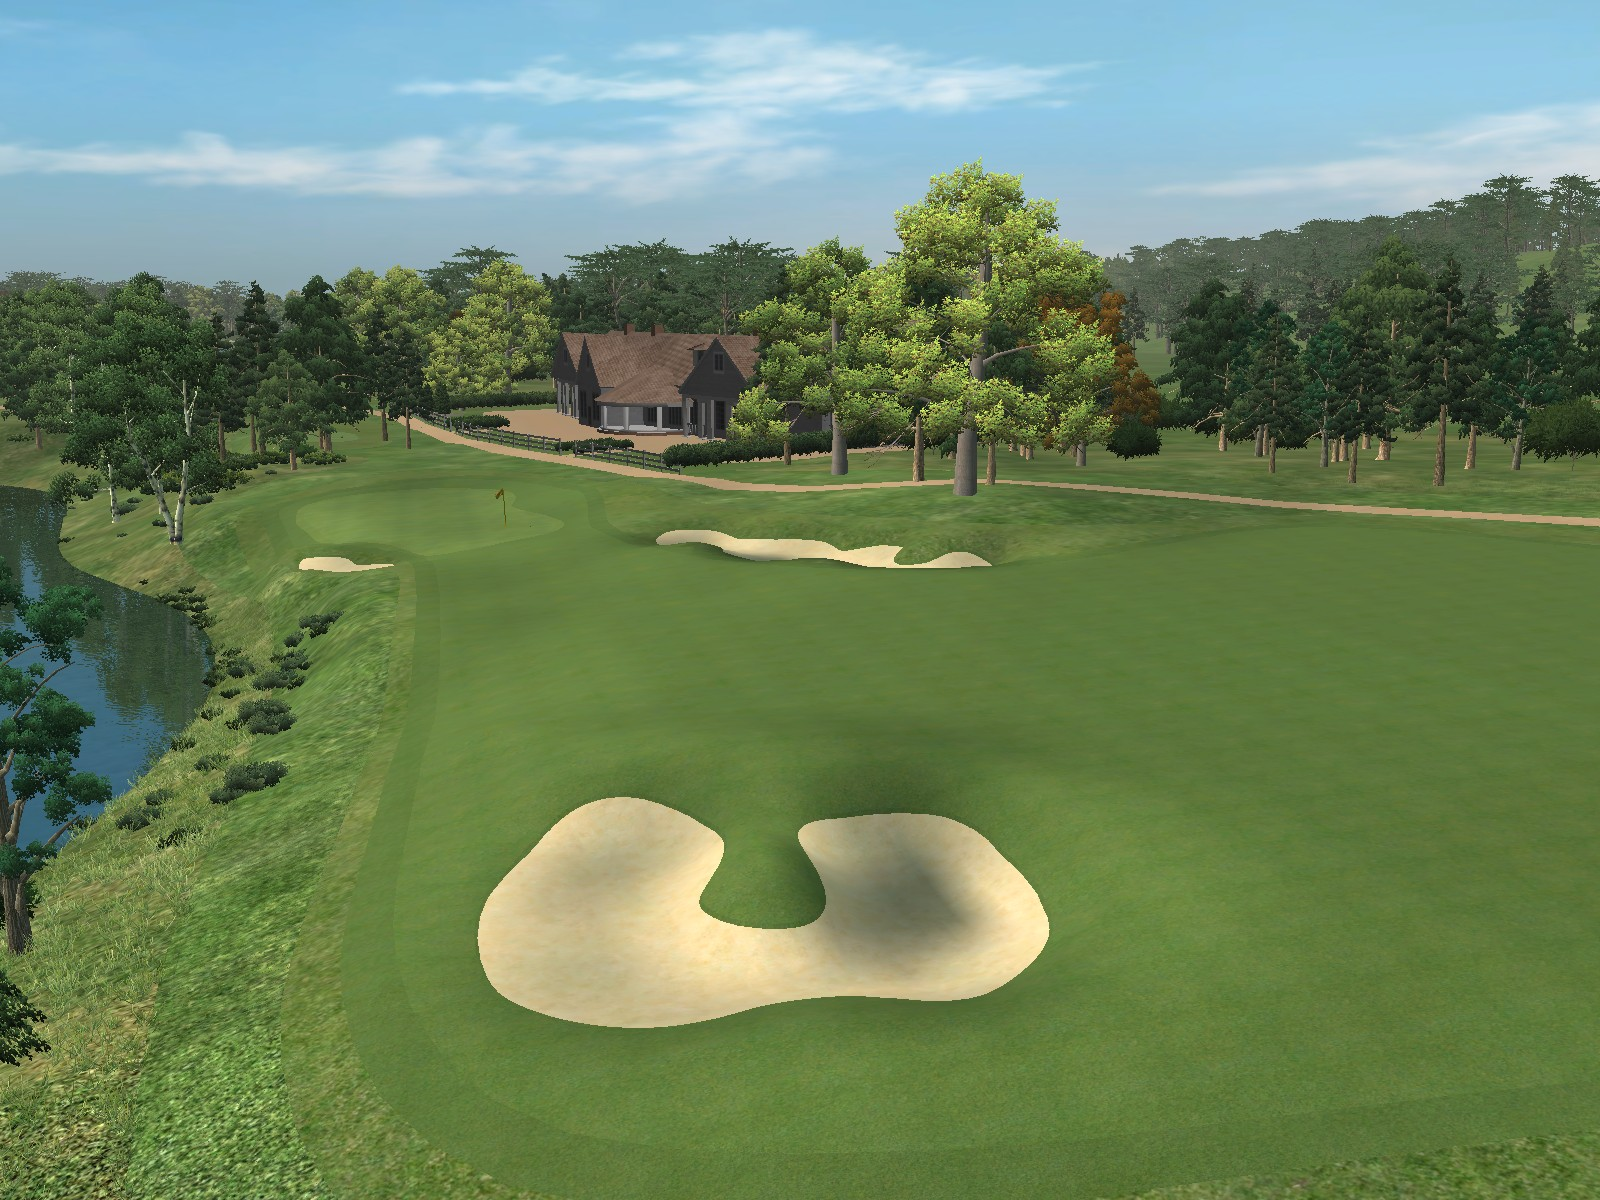 Picture of Crombie Golf Club - click to view original size